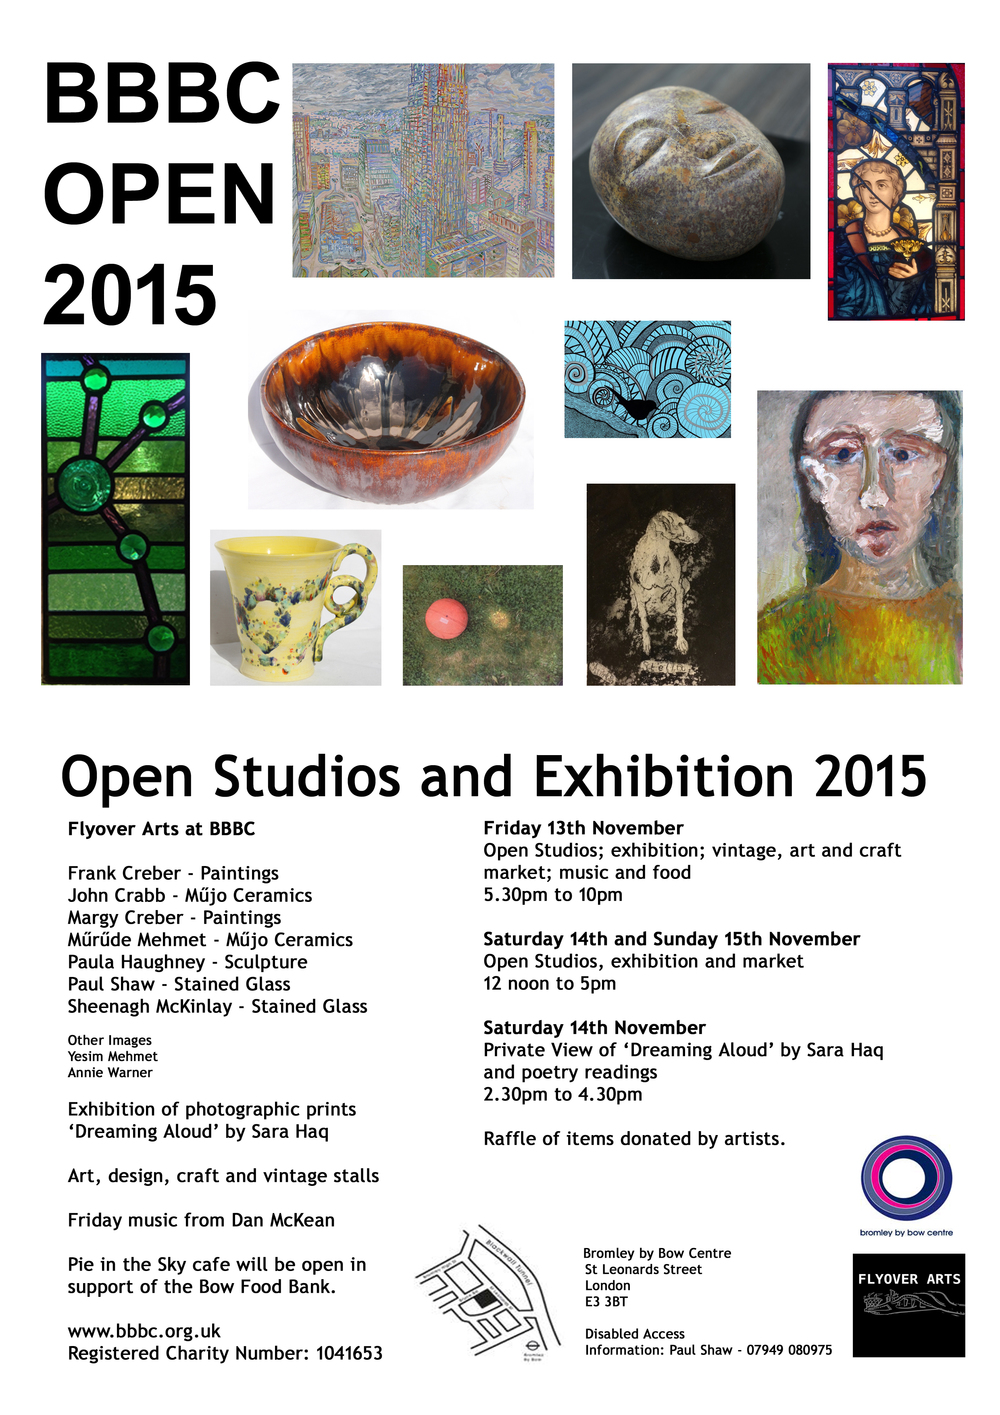 All welcome to our open studios at Bromley by Bow Centre